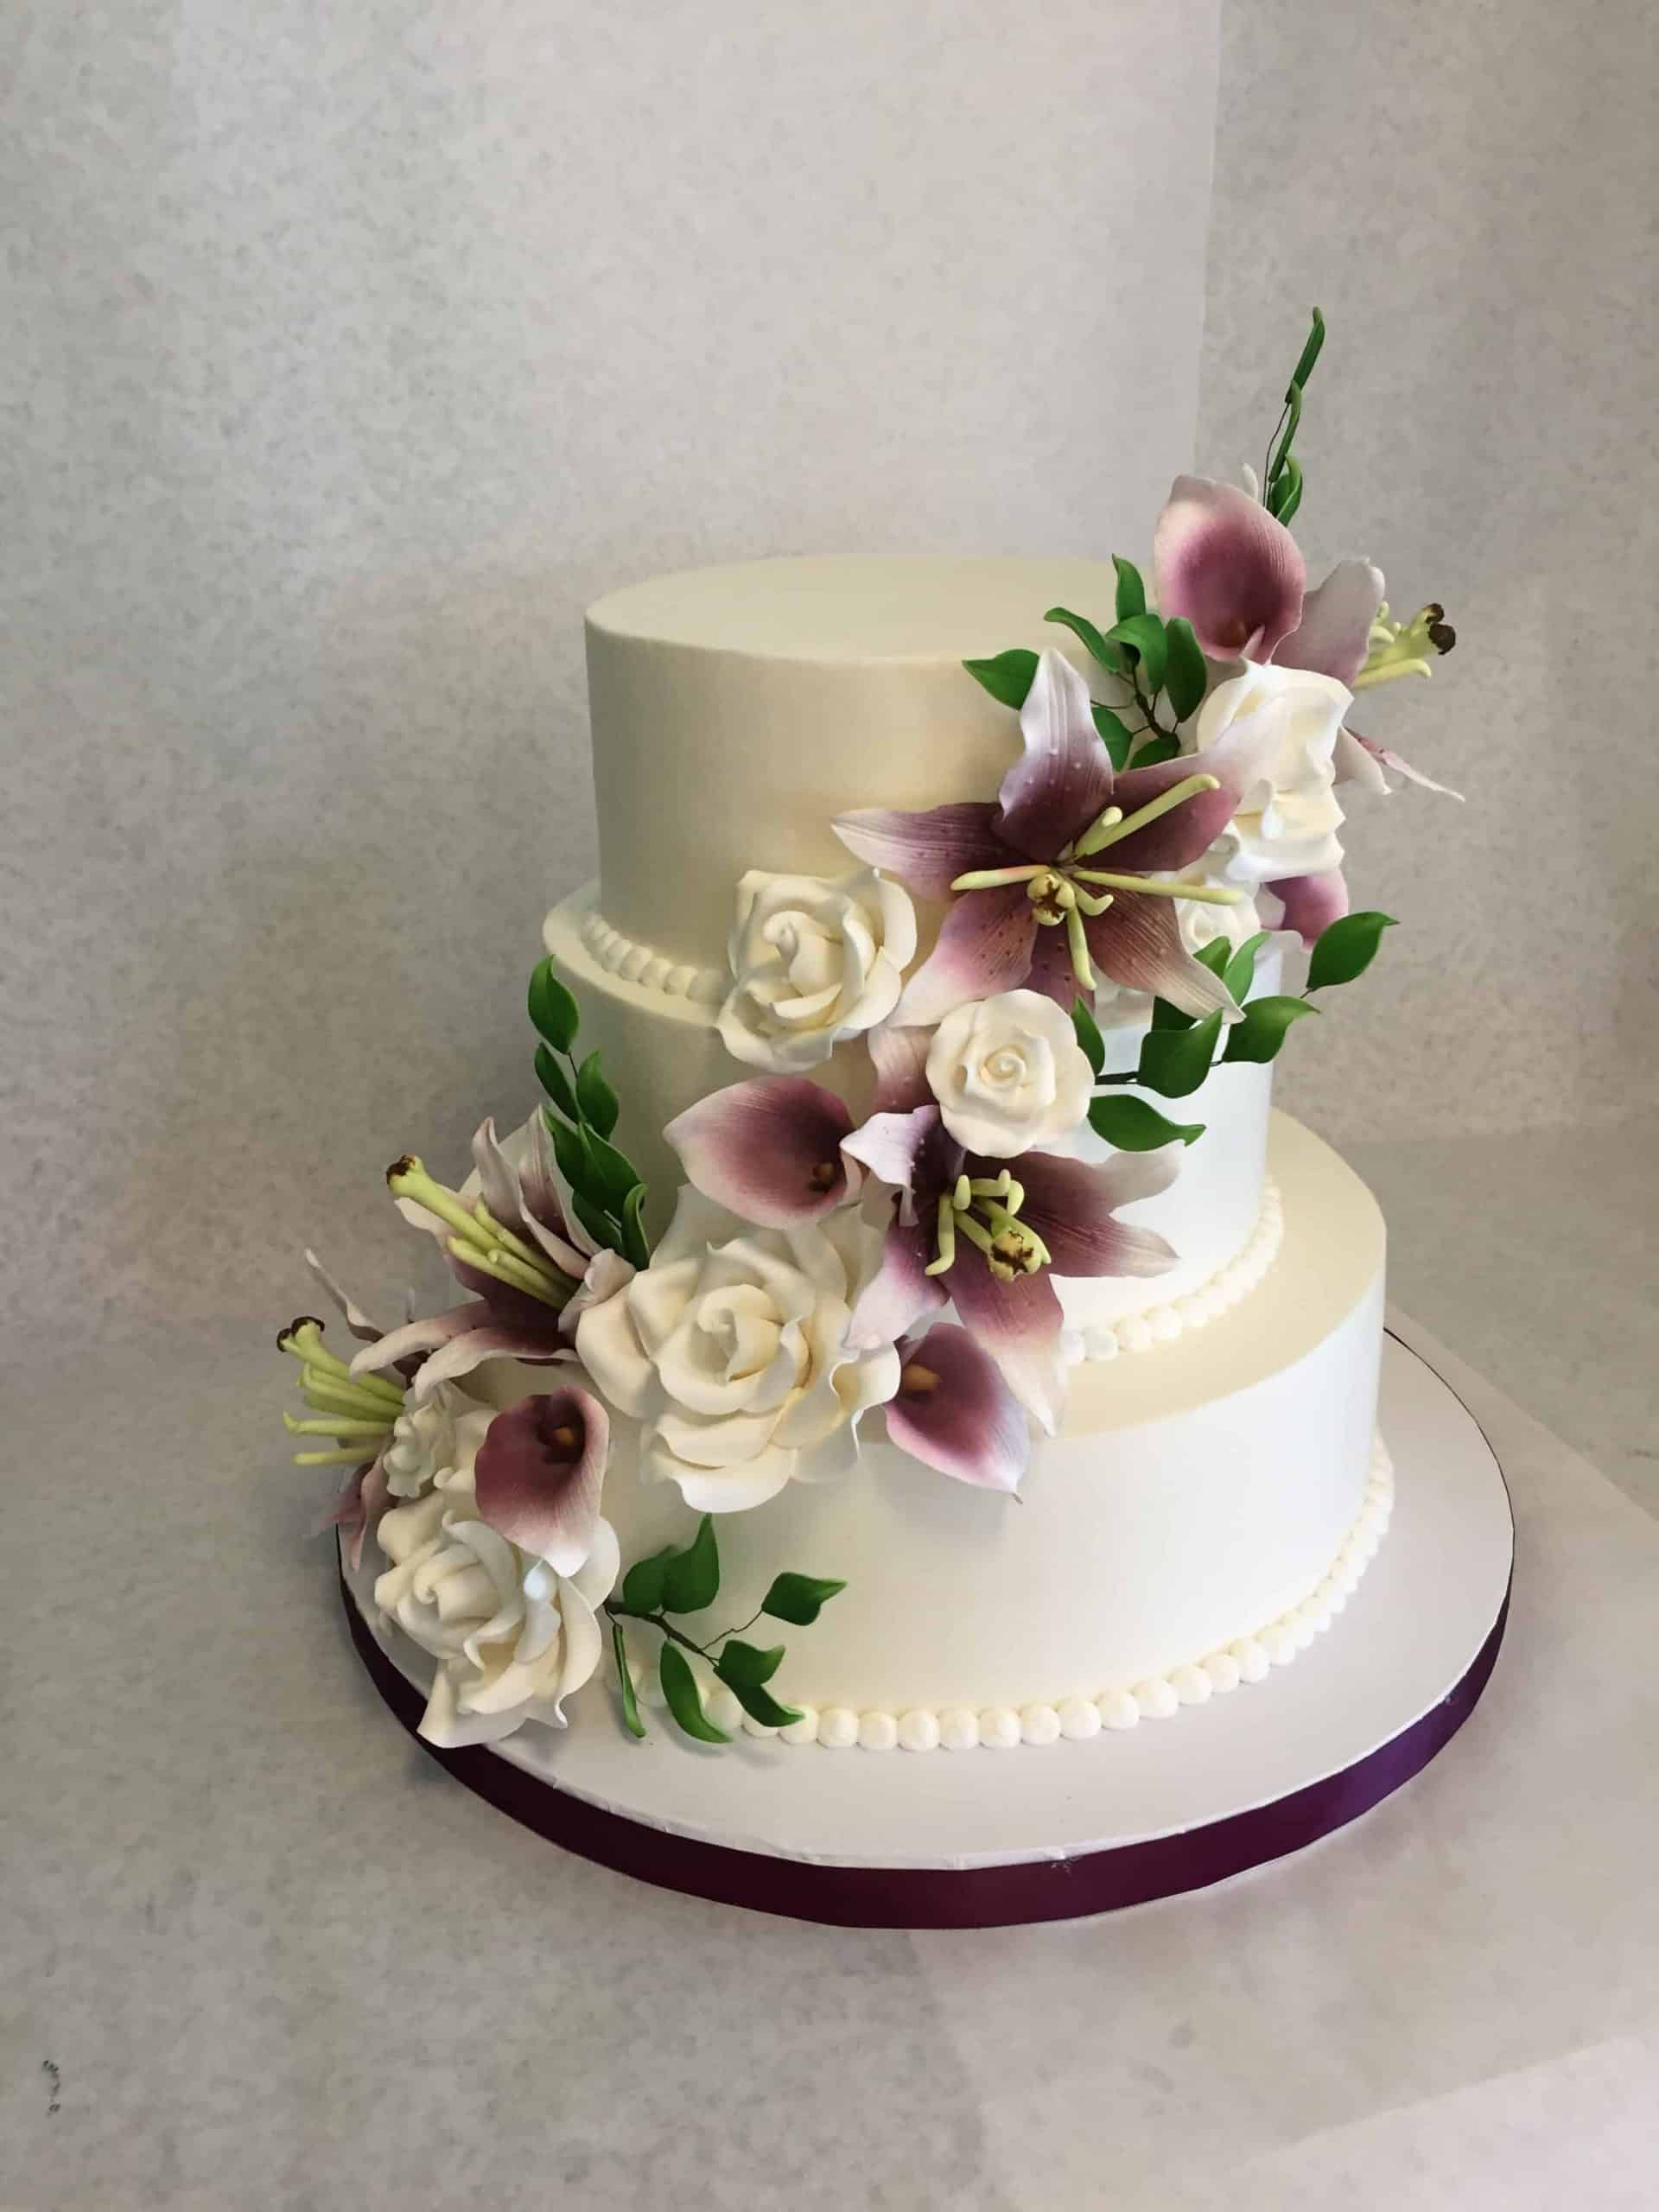 Sugar Flower Cascade Wedding Cake done in White and Wine Colors